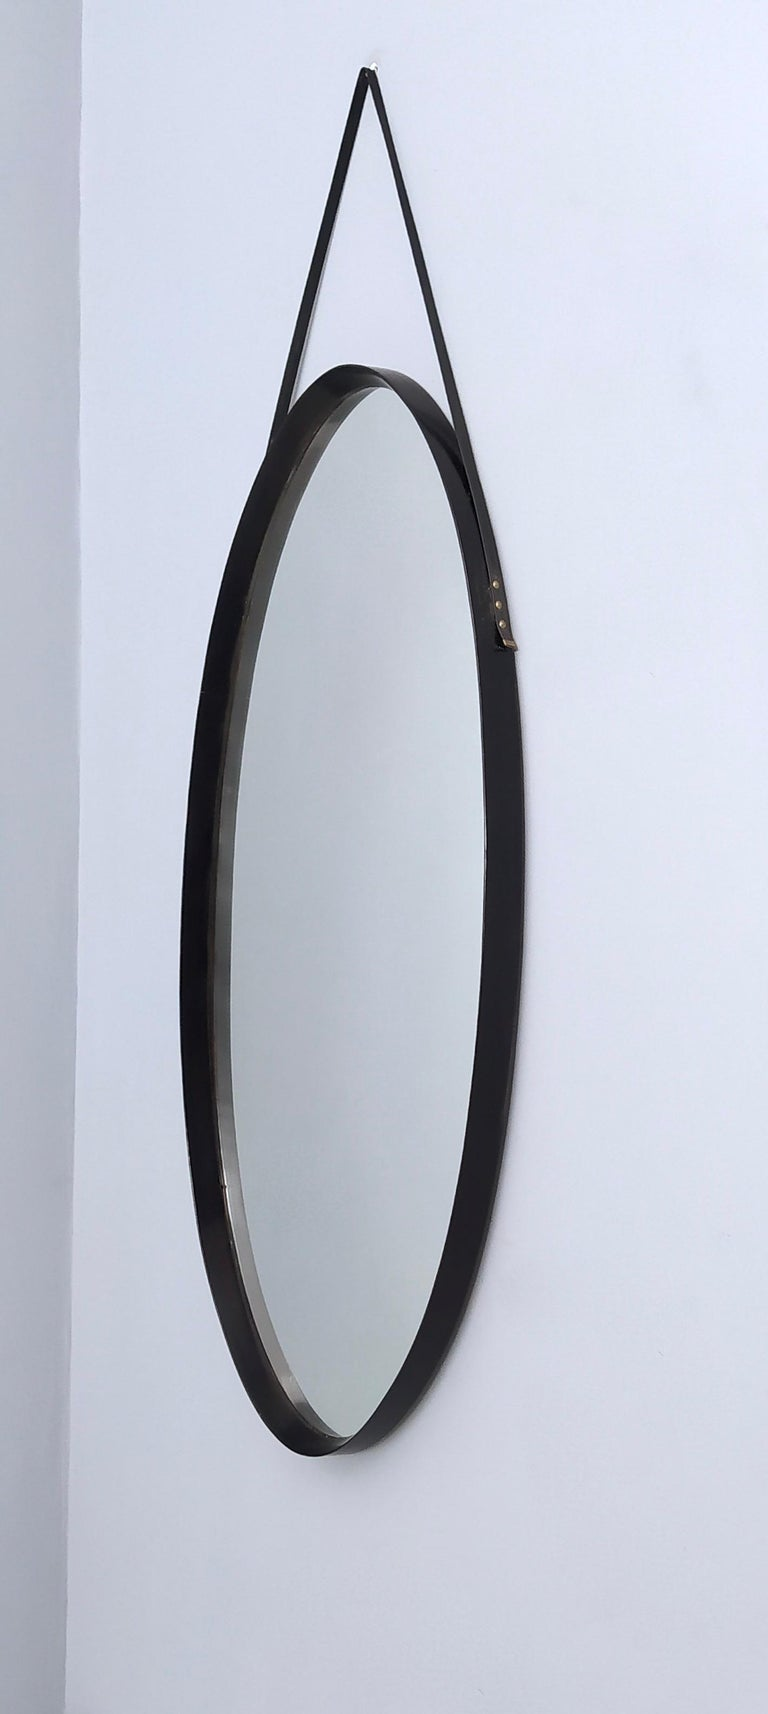 Oval Wall Mirror with Ebonized Wood Frame and a Leather Hook, Italy In Good Condition For Sale In Bresso, Lombardy